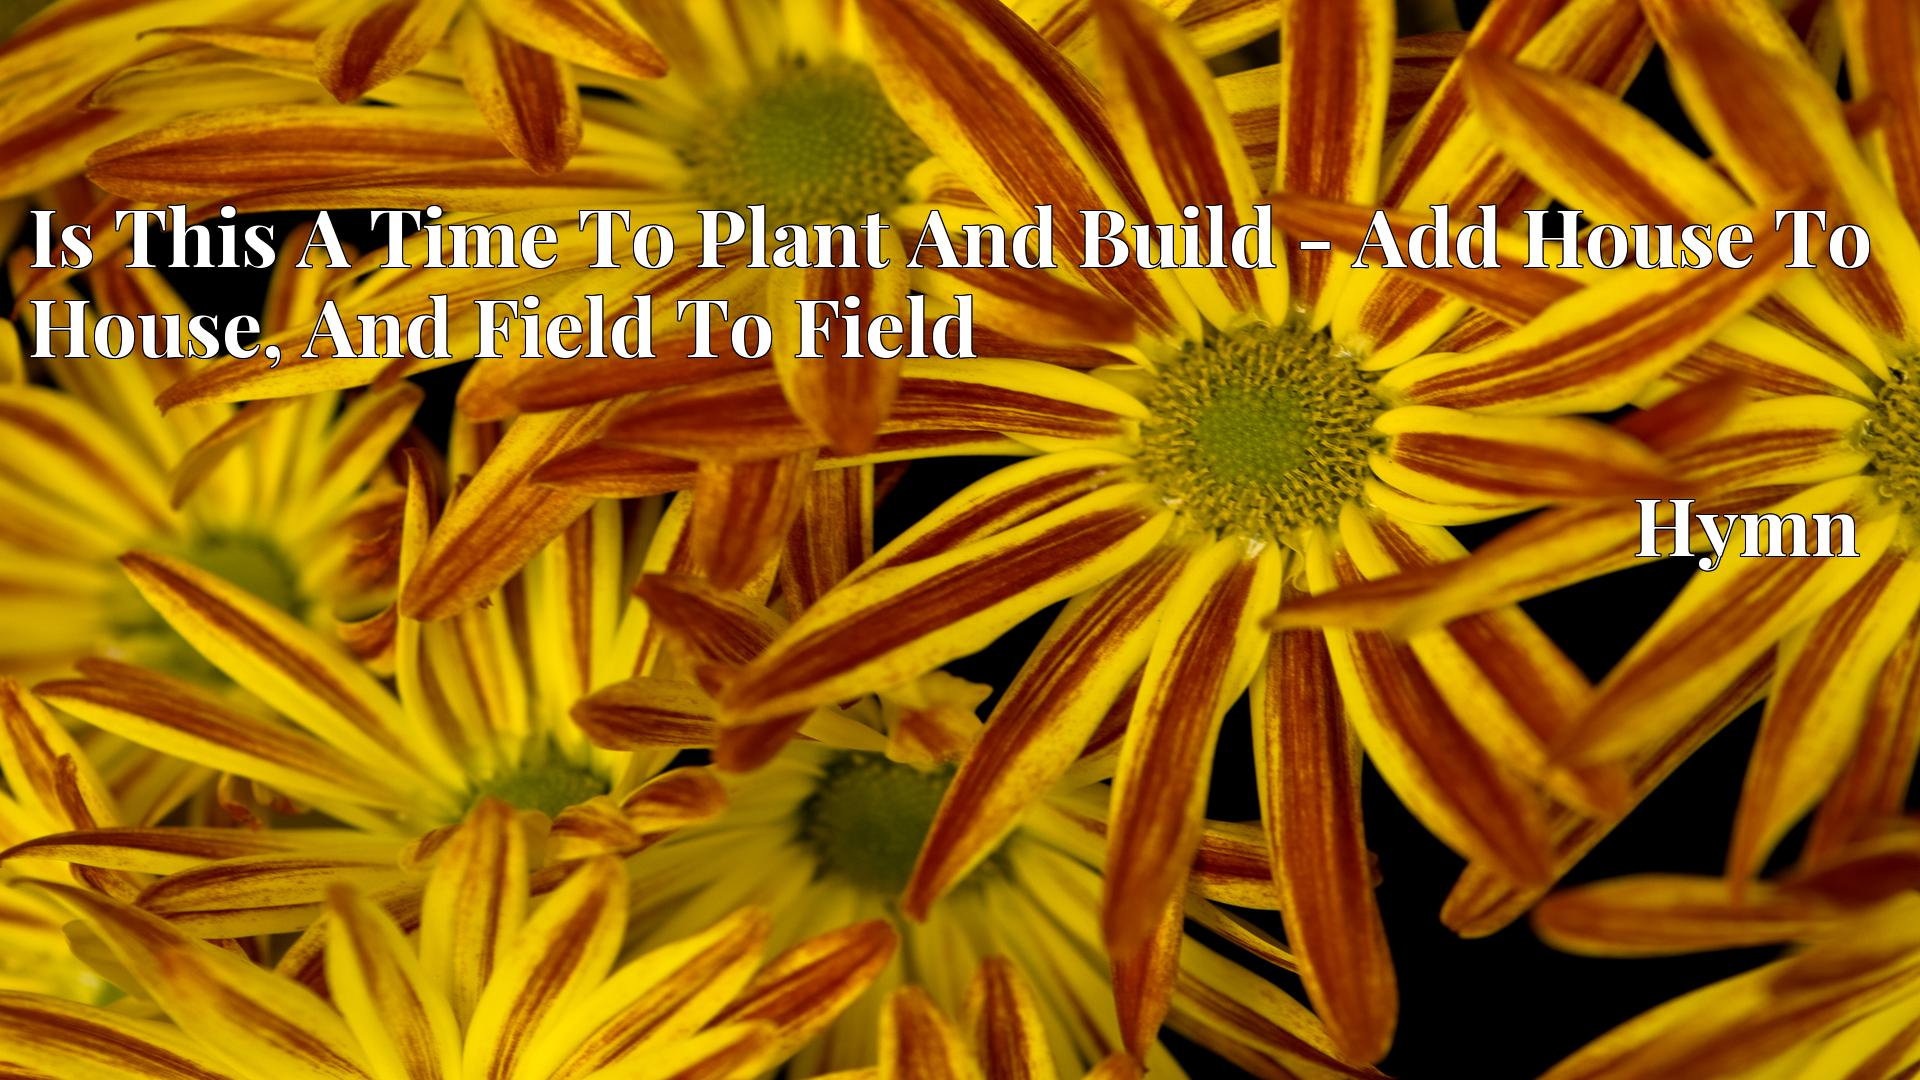 Is This A Time To Plant And Build - Add House To House, And Field To Field Hymn